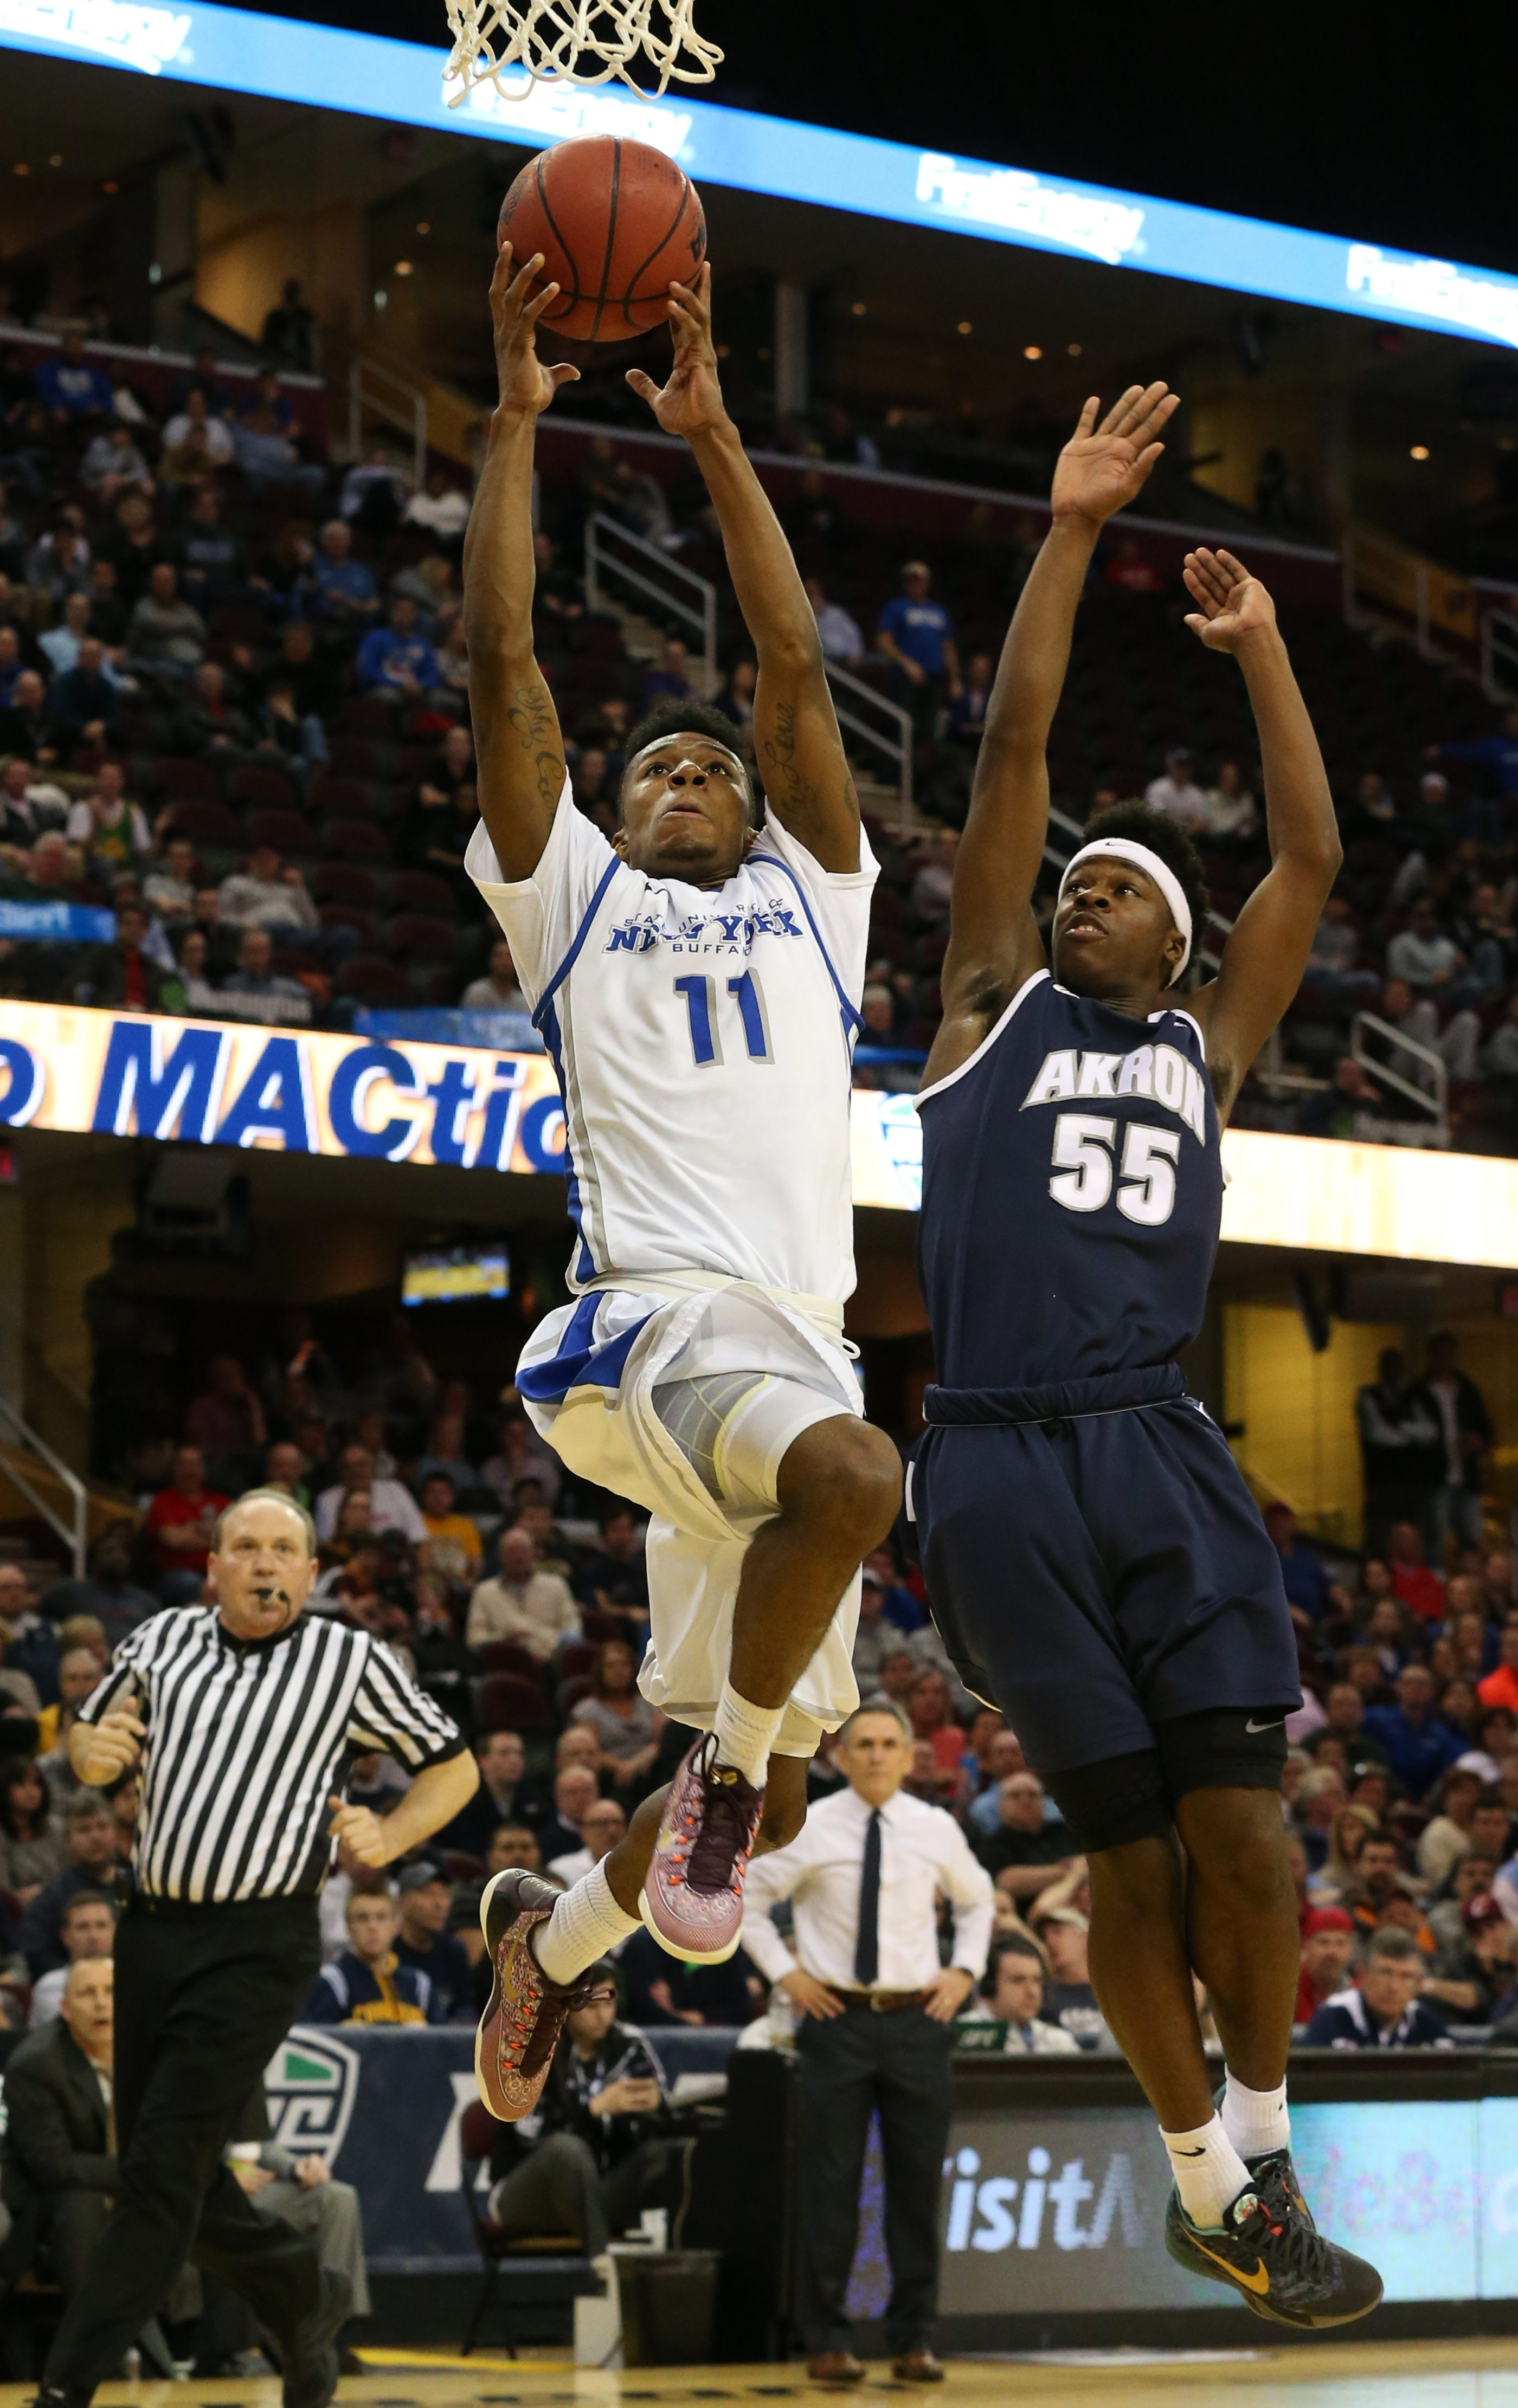 2 lien cut Buffalo Bulls guard Shannon Evans (11) scores two points over Akron Zips guard Antino Jackson (55) in the first half during the semifinals of the 2015 MAC Men's basketball Championship at Quicken Loans Arena in Cleveland,Ohio on Friday, March 13, 2015.  (